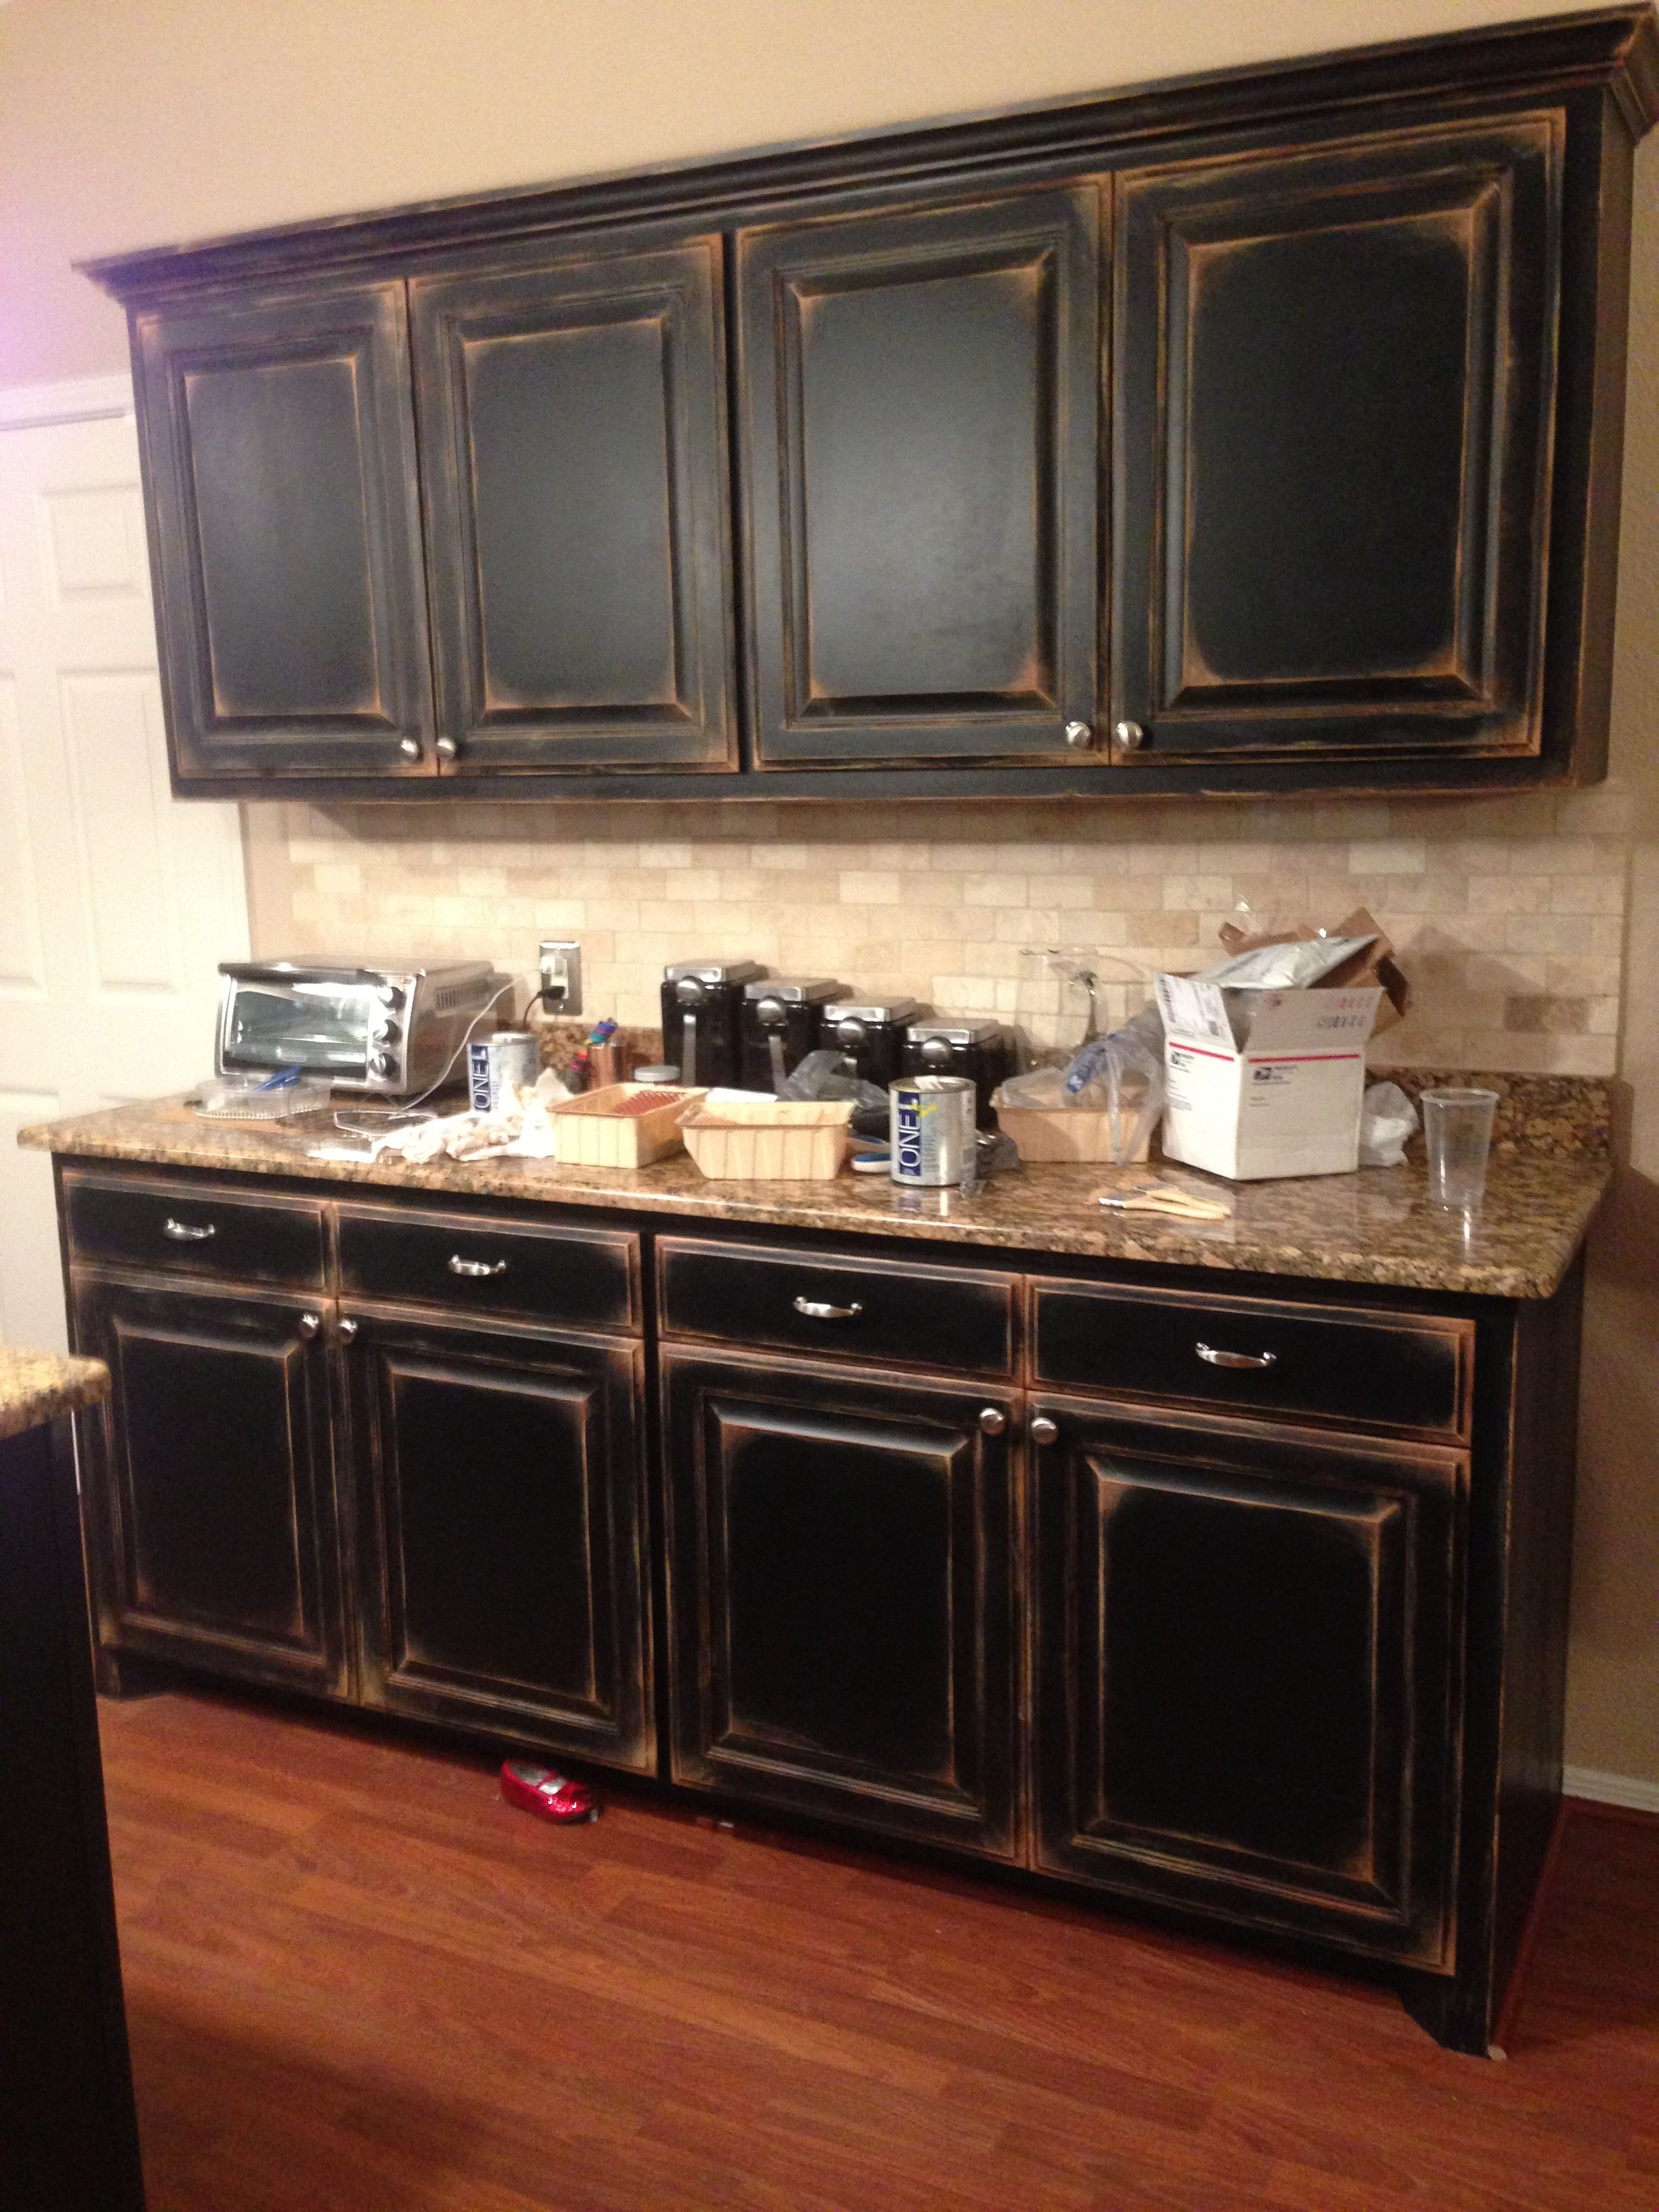 Black cabinets with faux distressing  Used 3 different colors of flat paint to create this